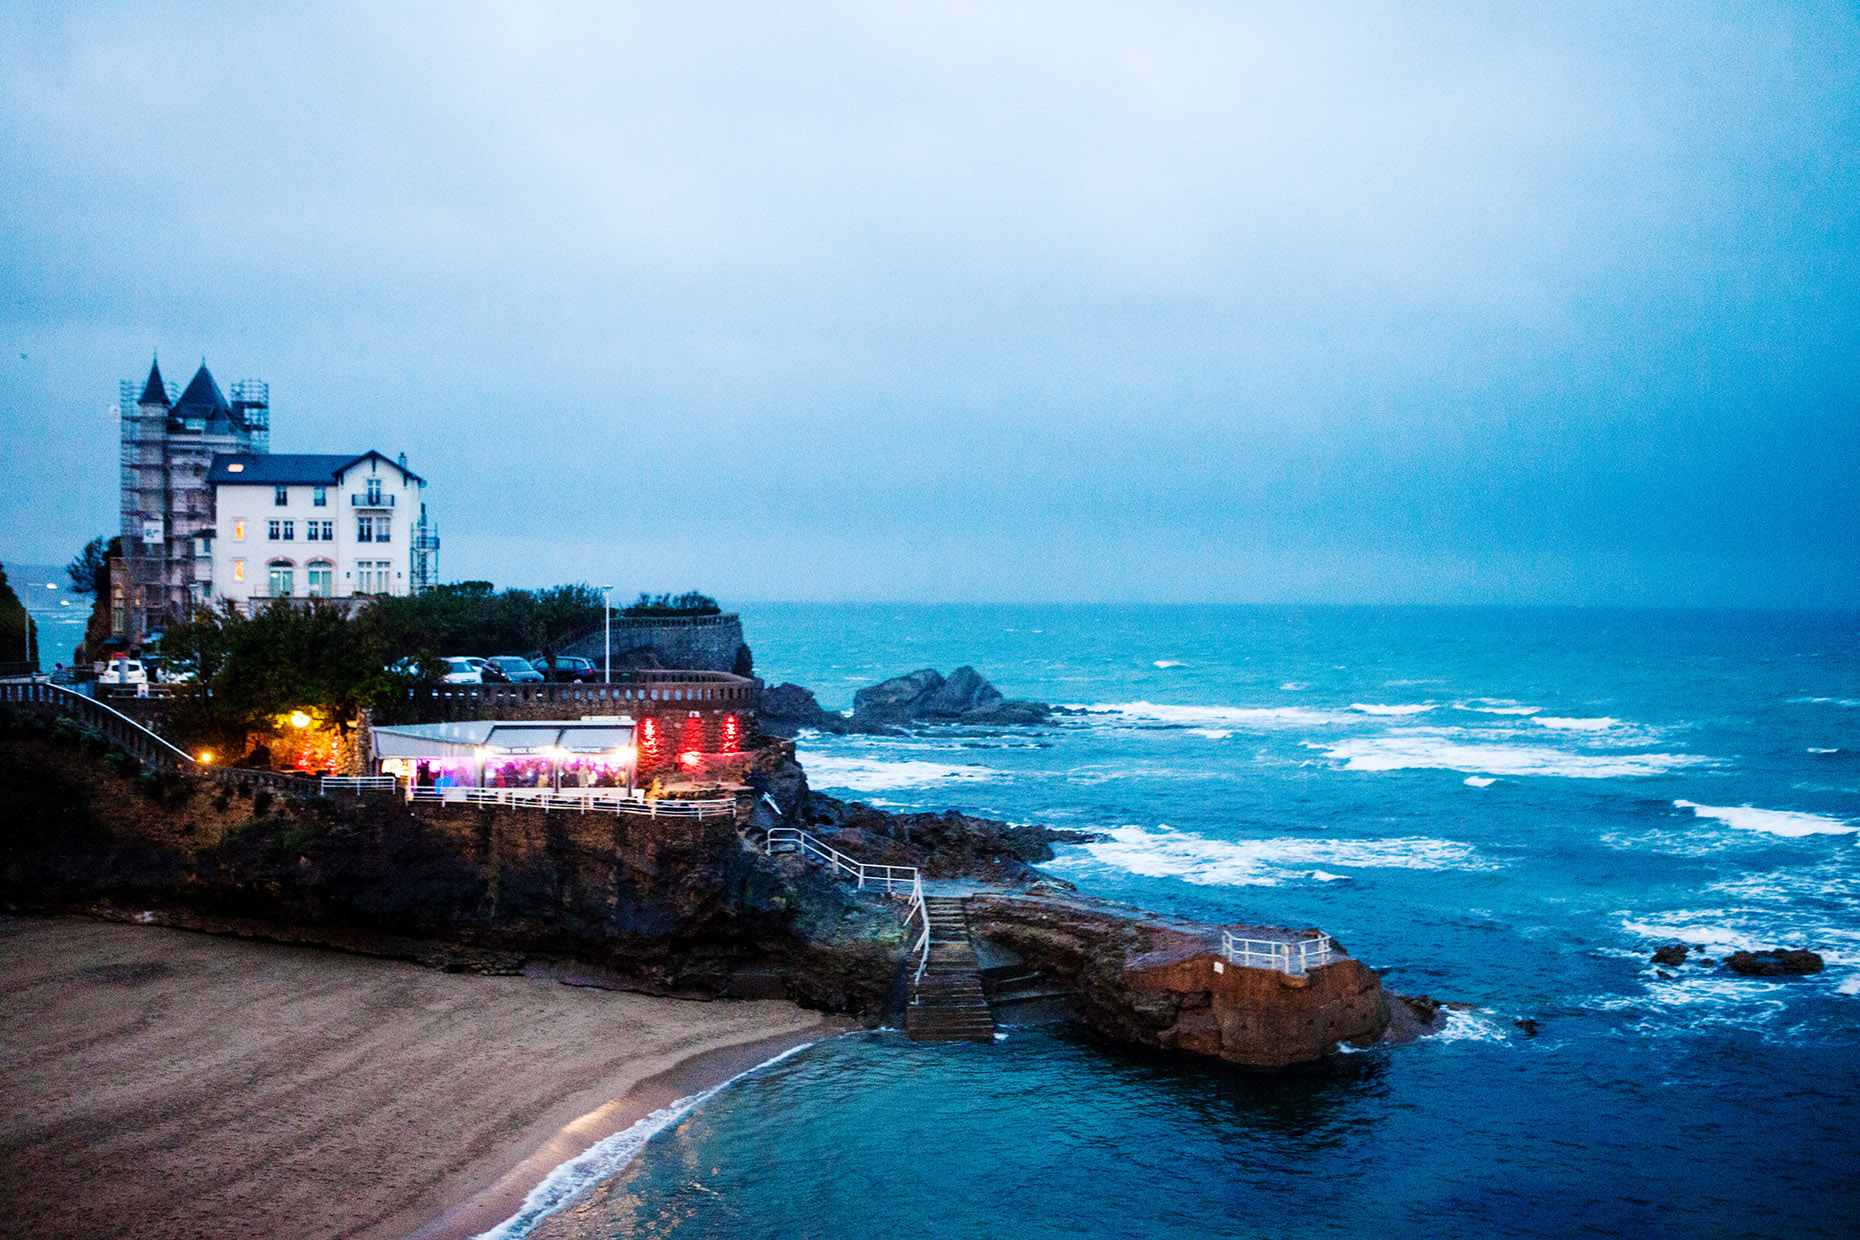 Biarritz travel photography